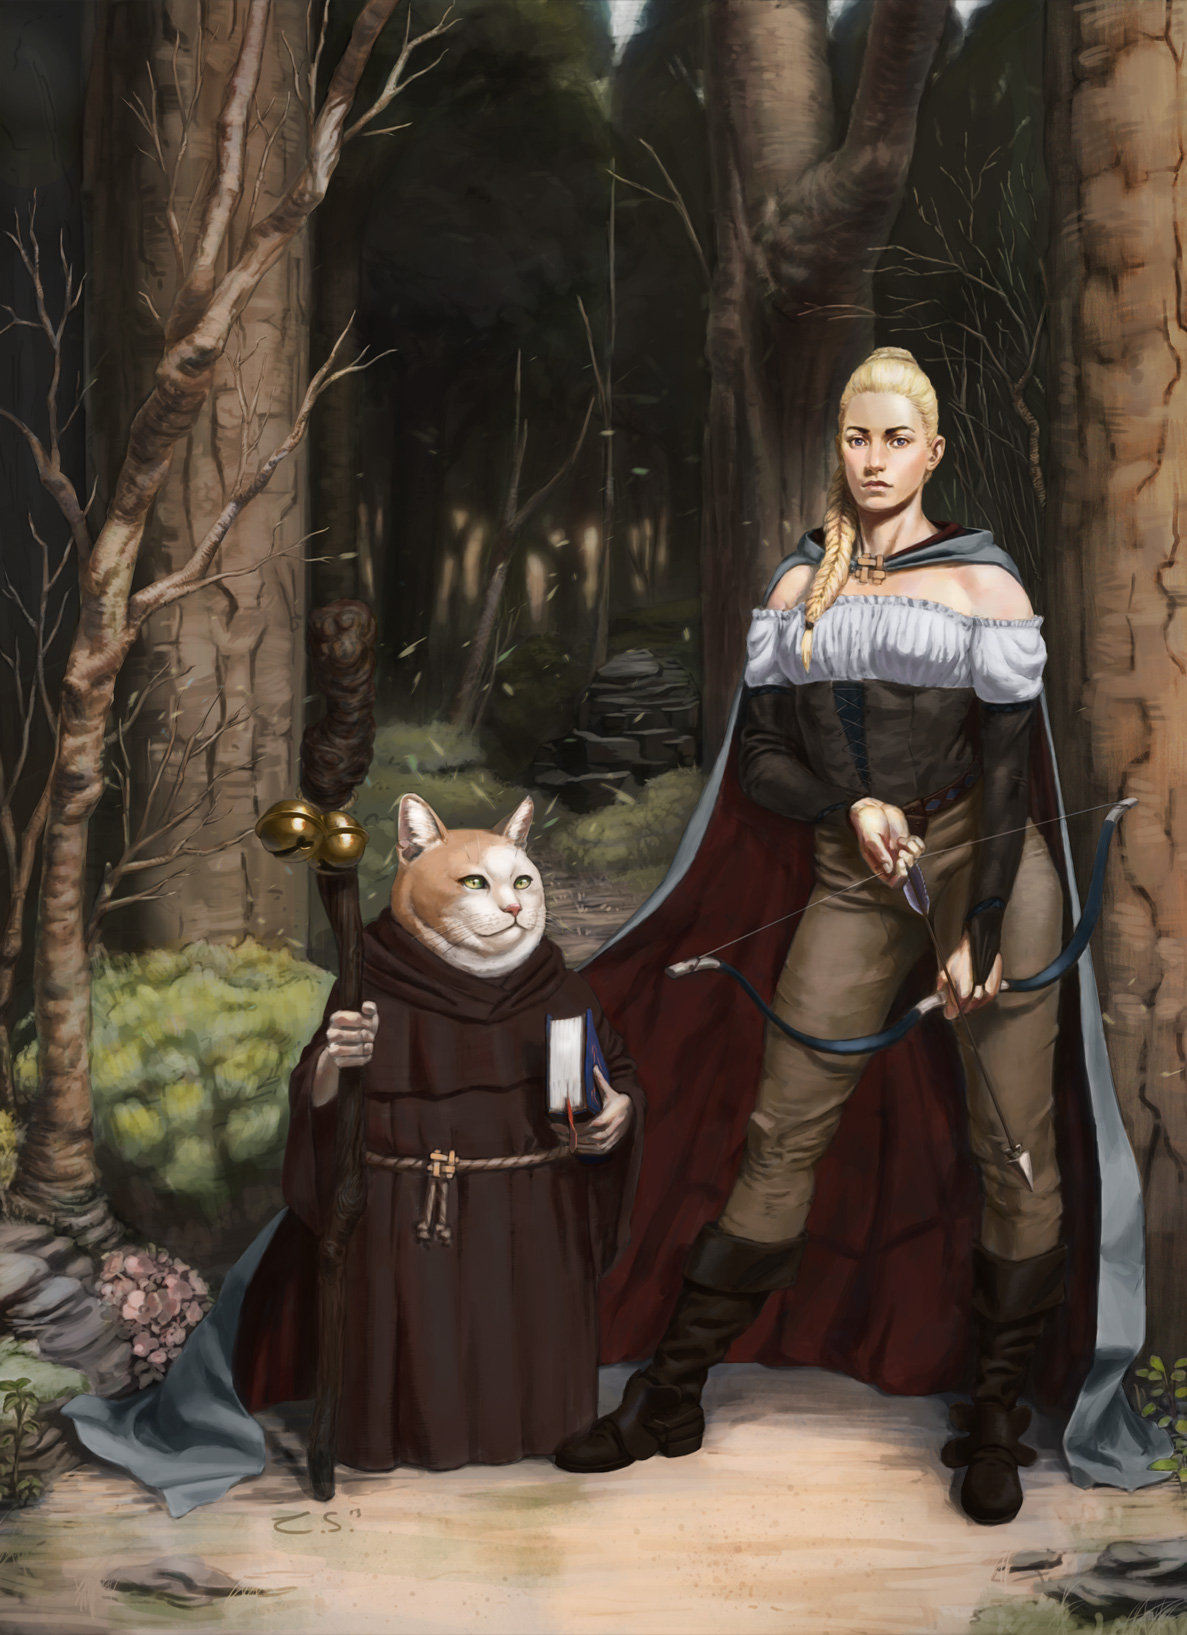 christopher-simons-rogue-and-cat-monk.jpg?1405247001